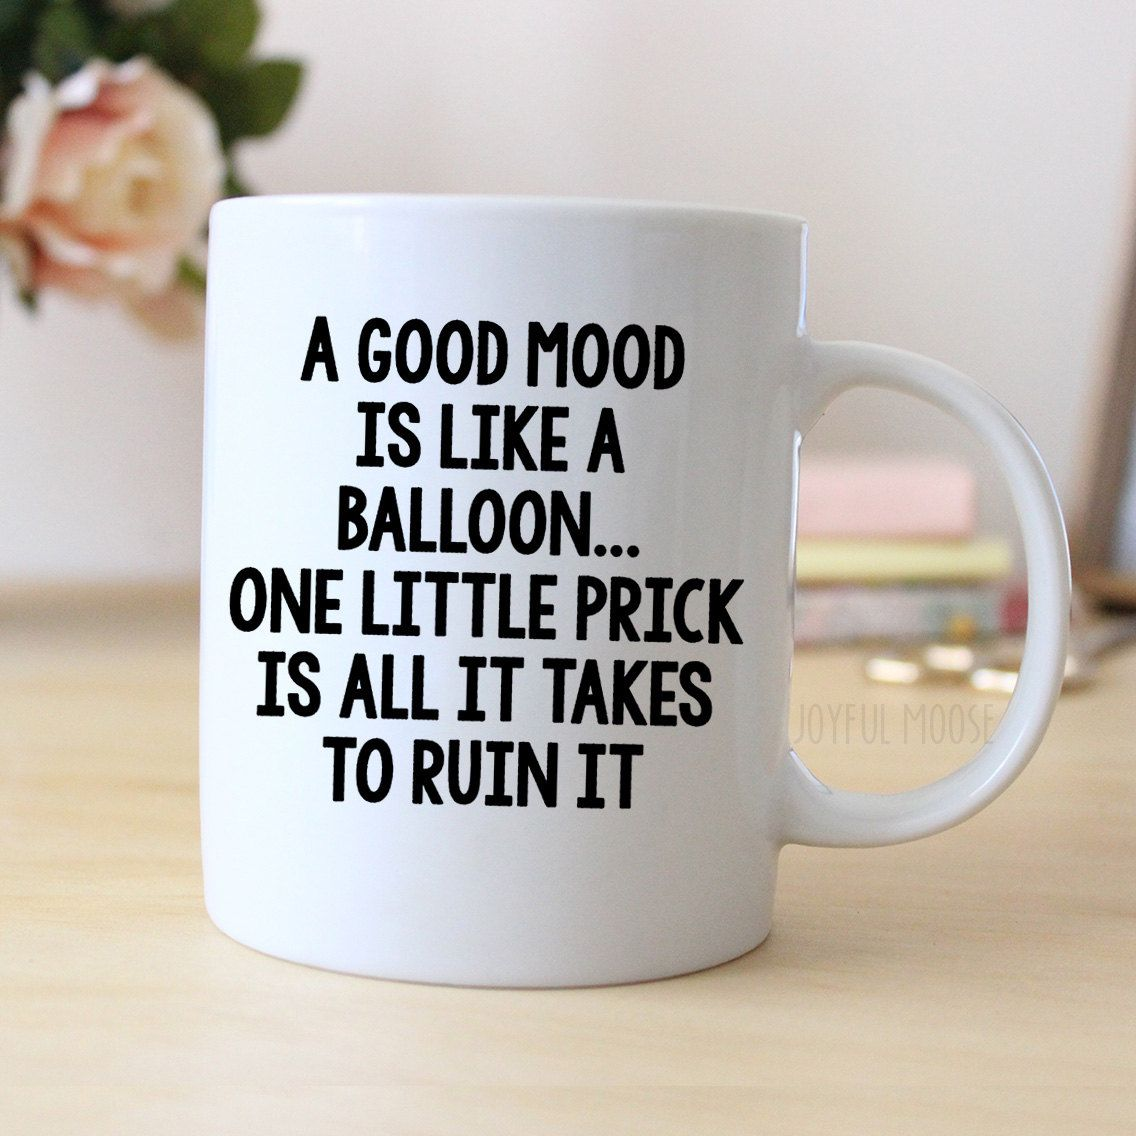 Funny coffee mug funny gift funny saying coffee mug funny coffee mug funny gift funny saying coffee mug negle Choice Image